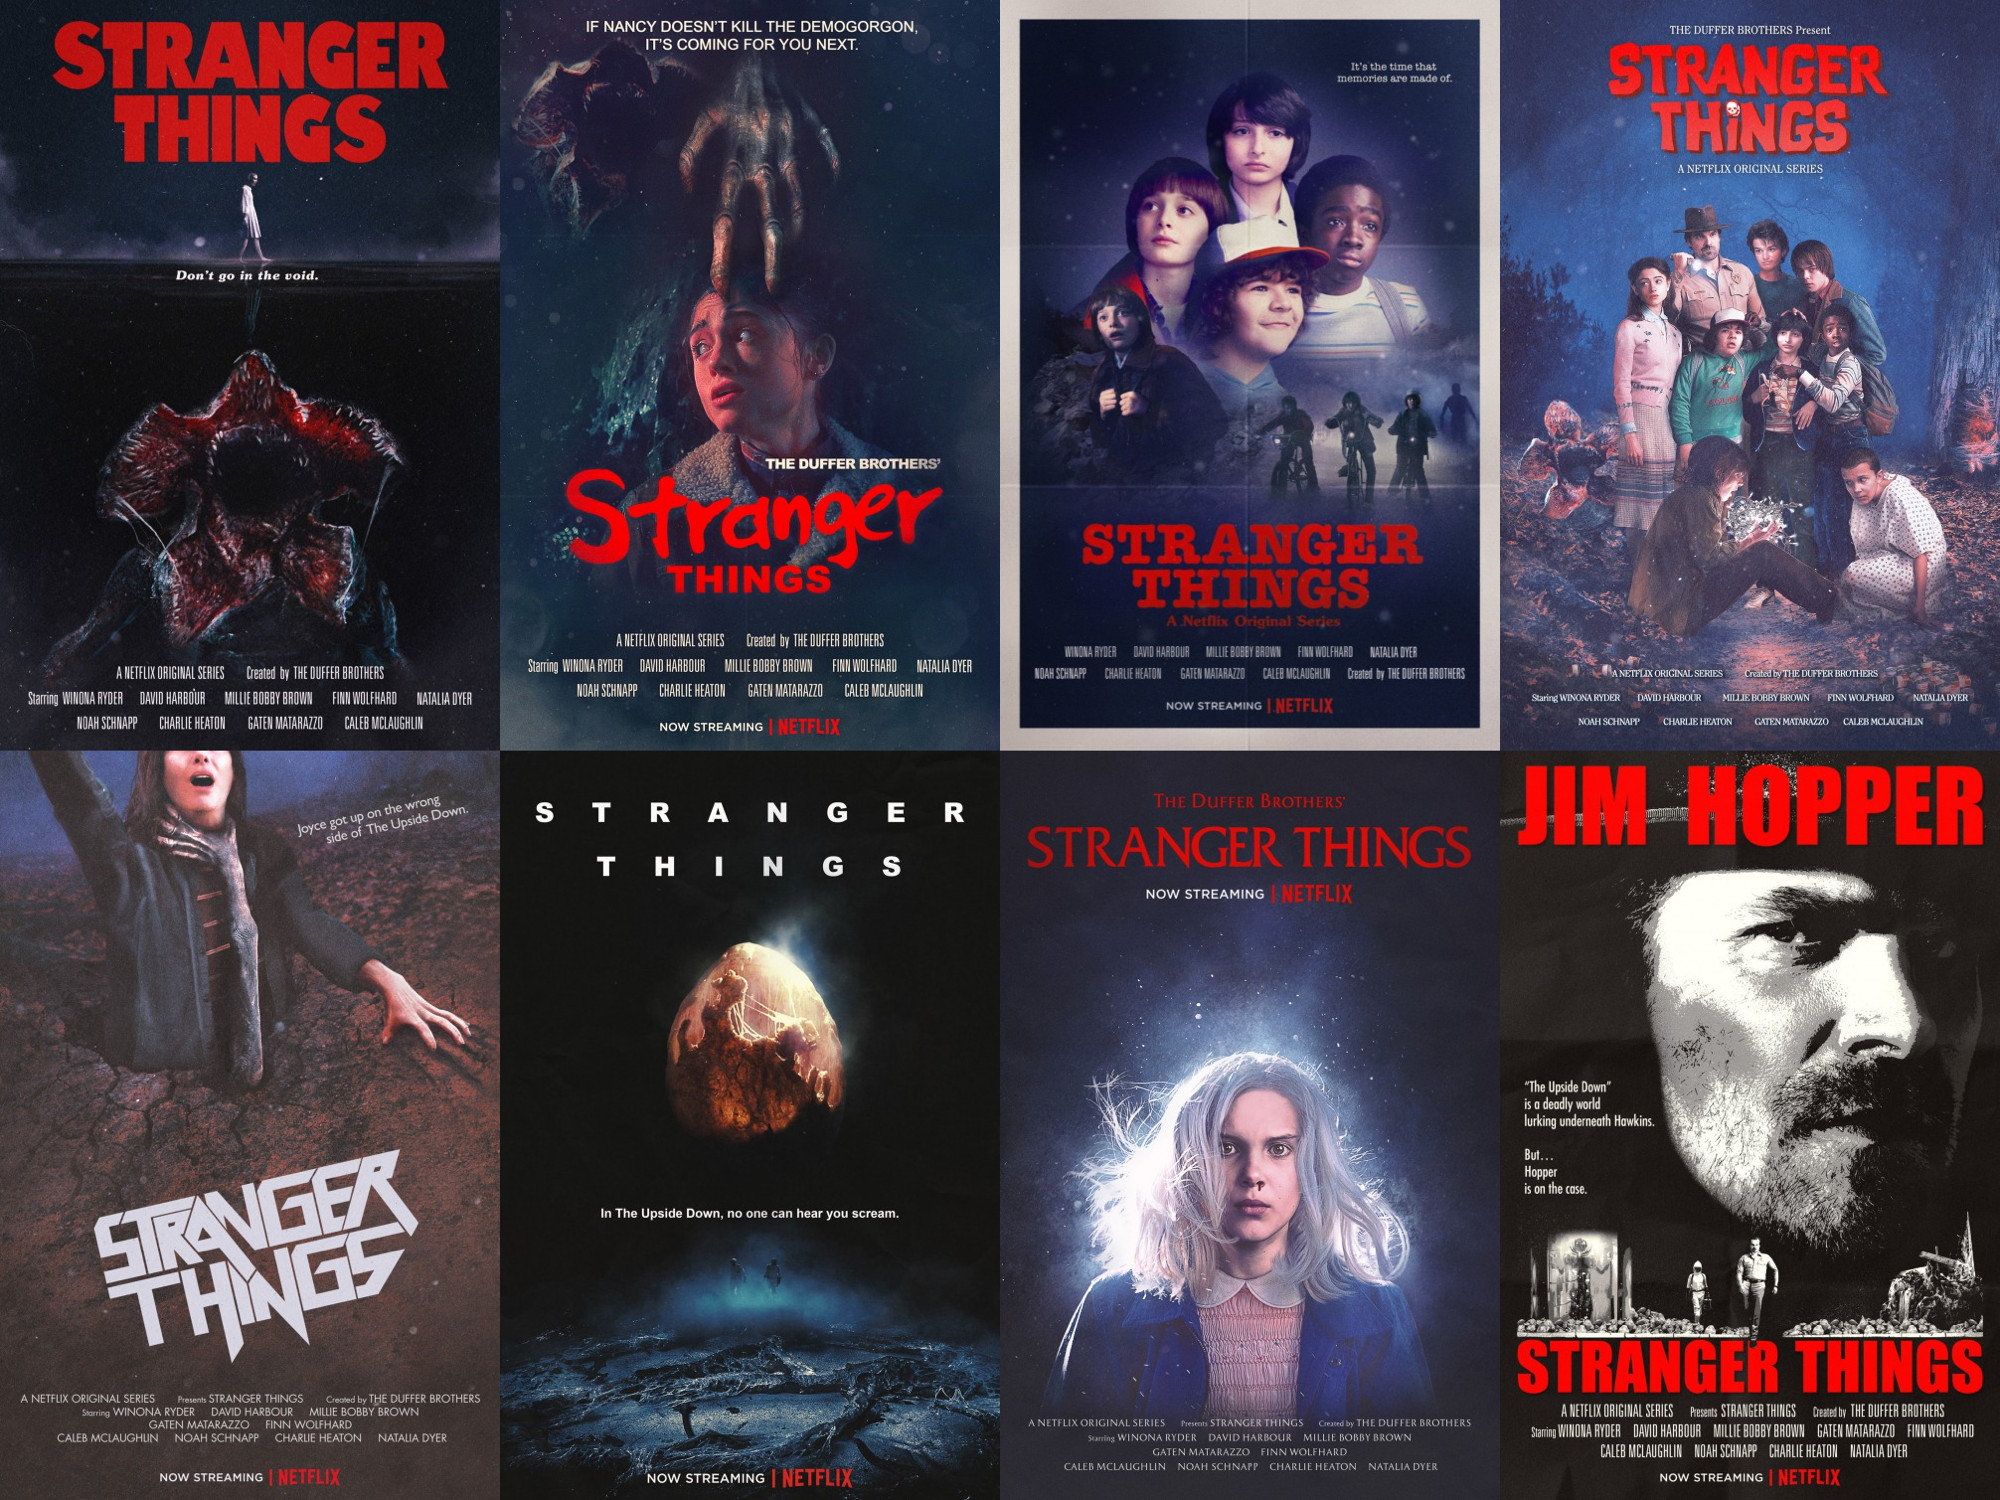 1970s and 1980s movie poster homages by Netflix Stranger Things 2